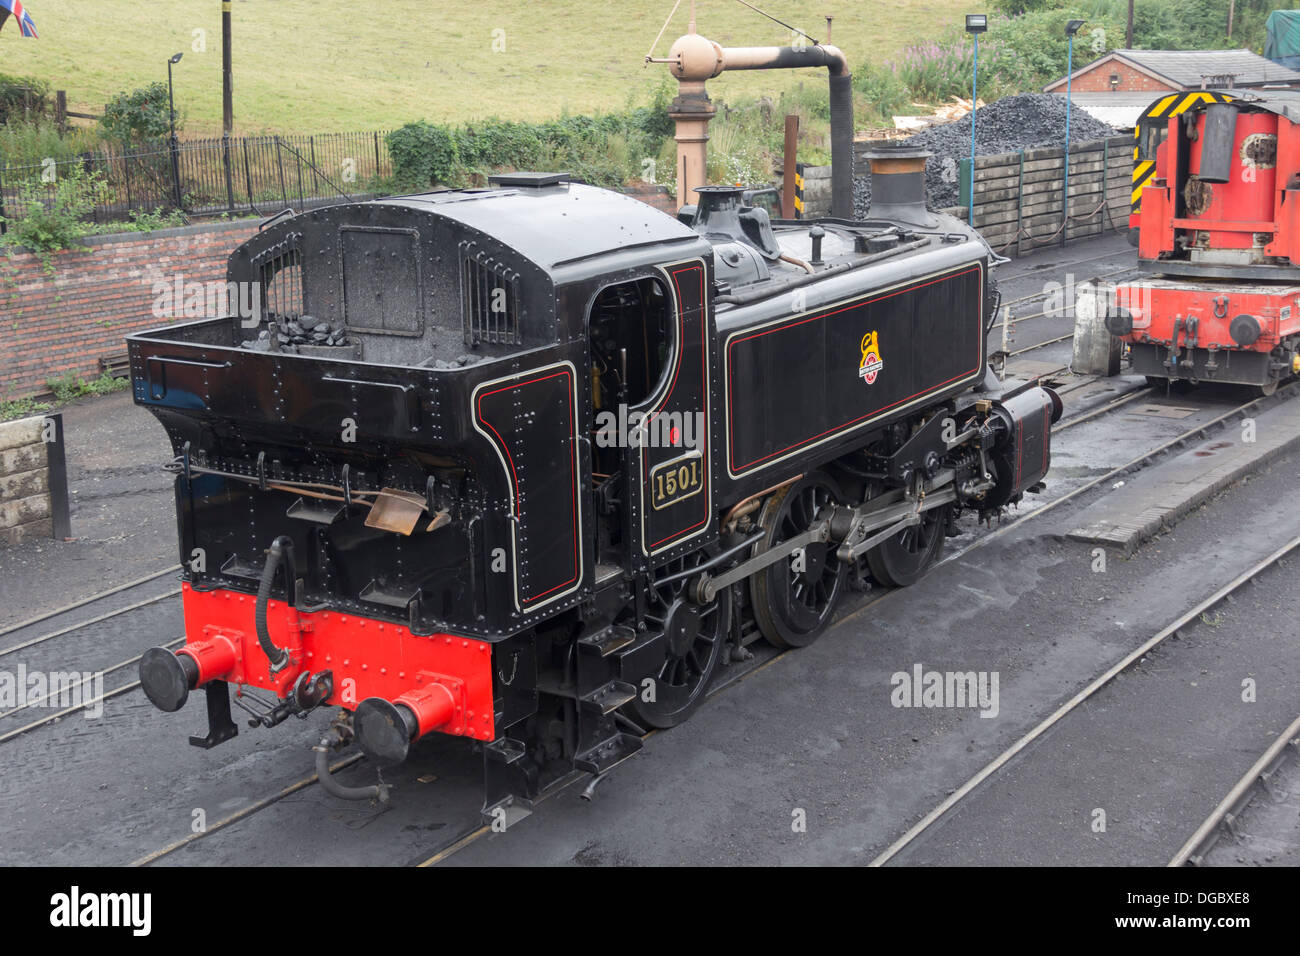 Preserved steam engine pannier tank 0-6-0  No. 1501, standing in the station yard at Bridgnorth, Severn Valley Railway. - Stock Image